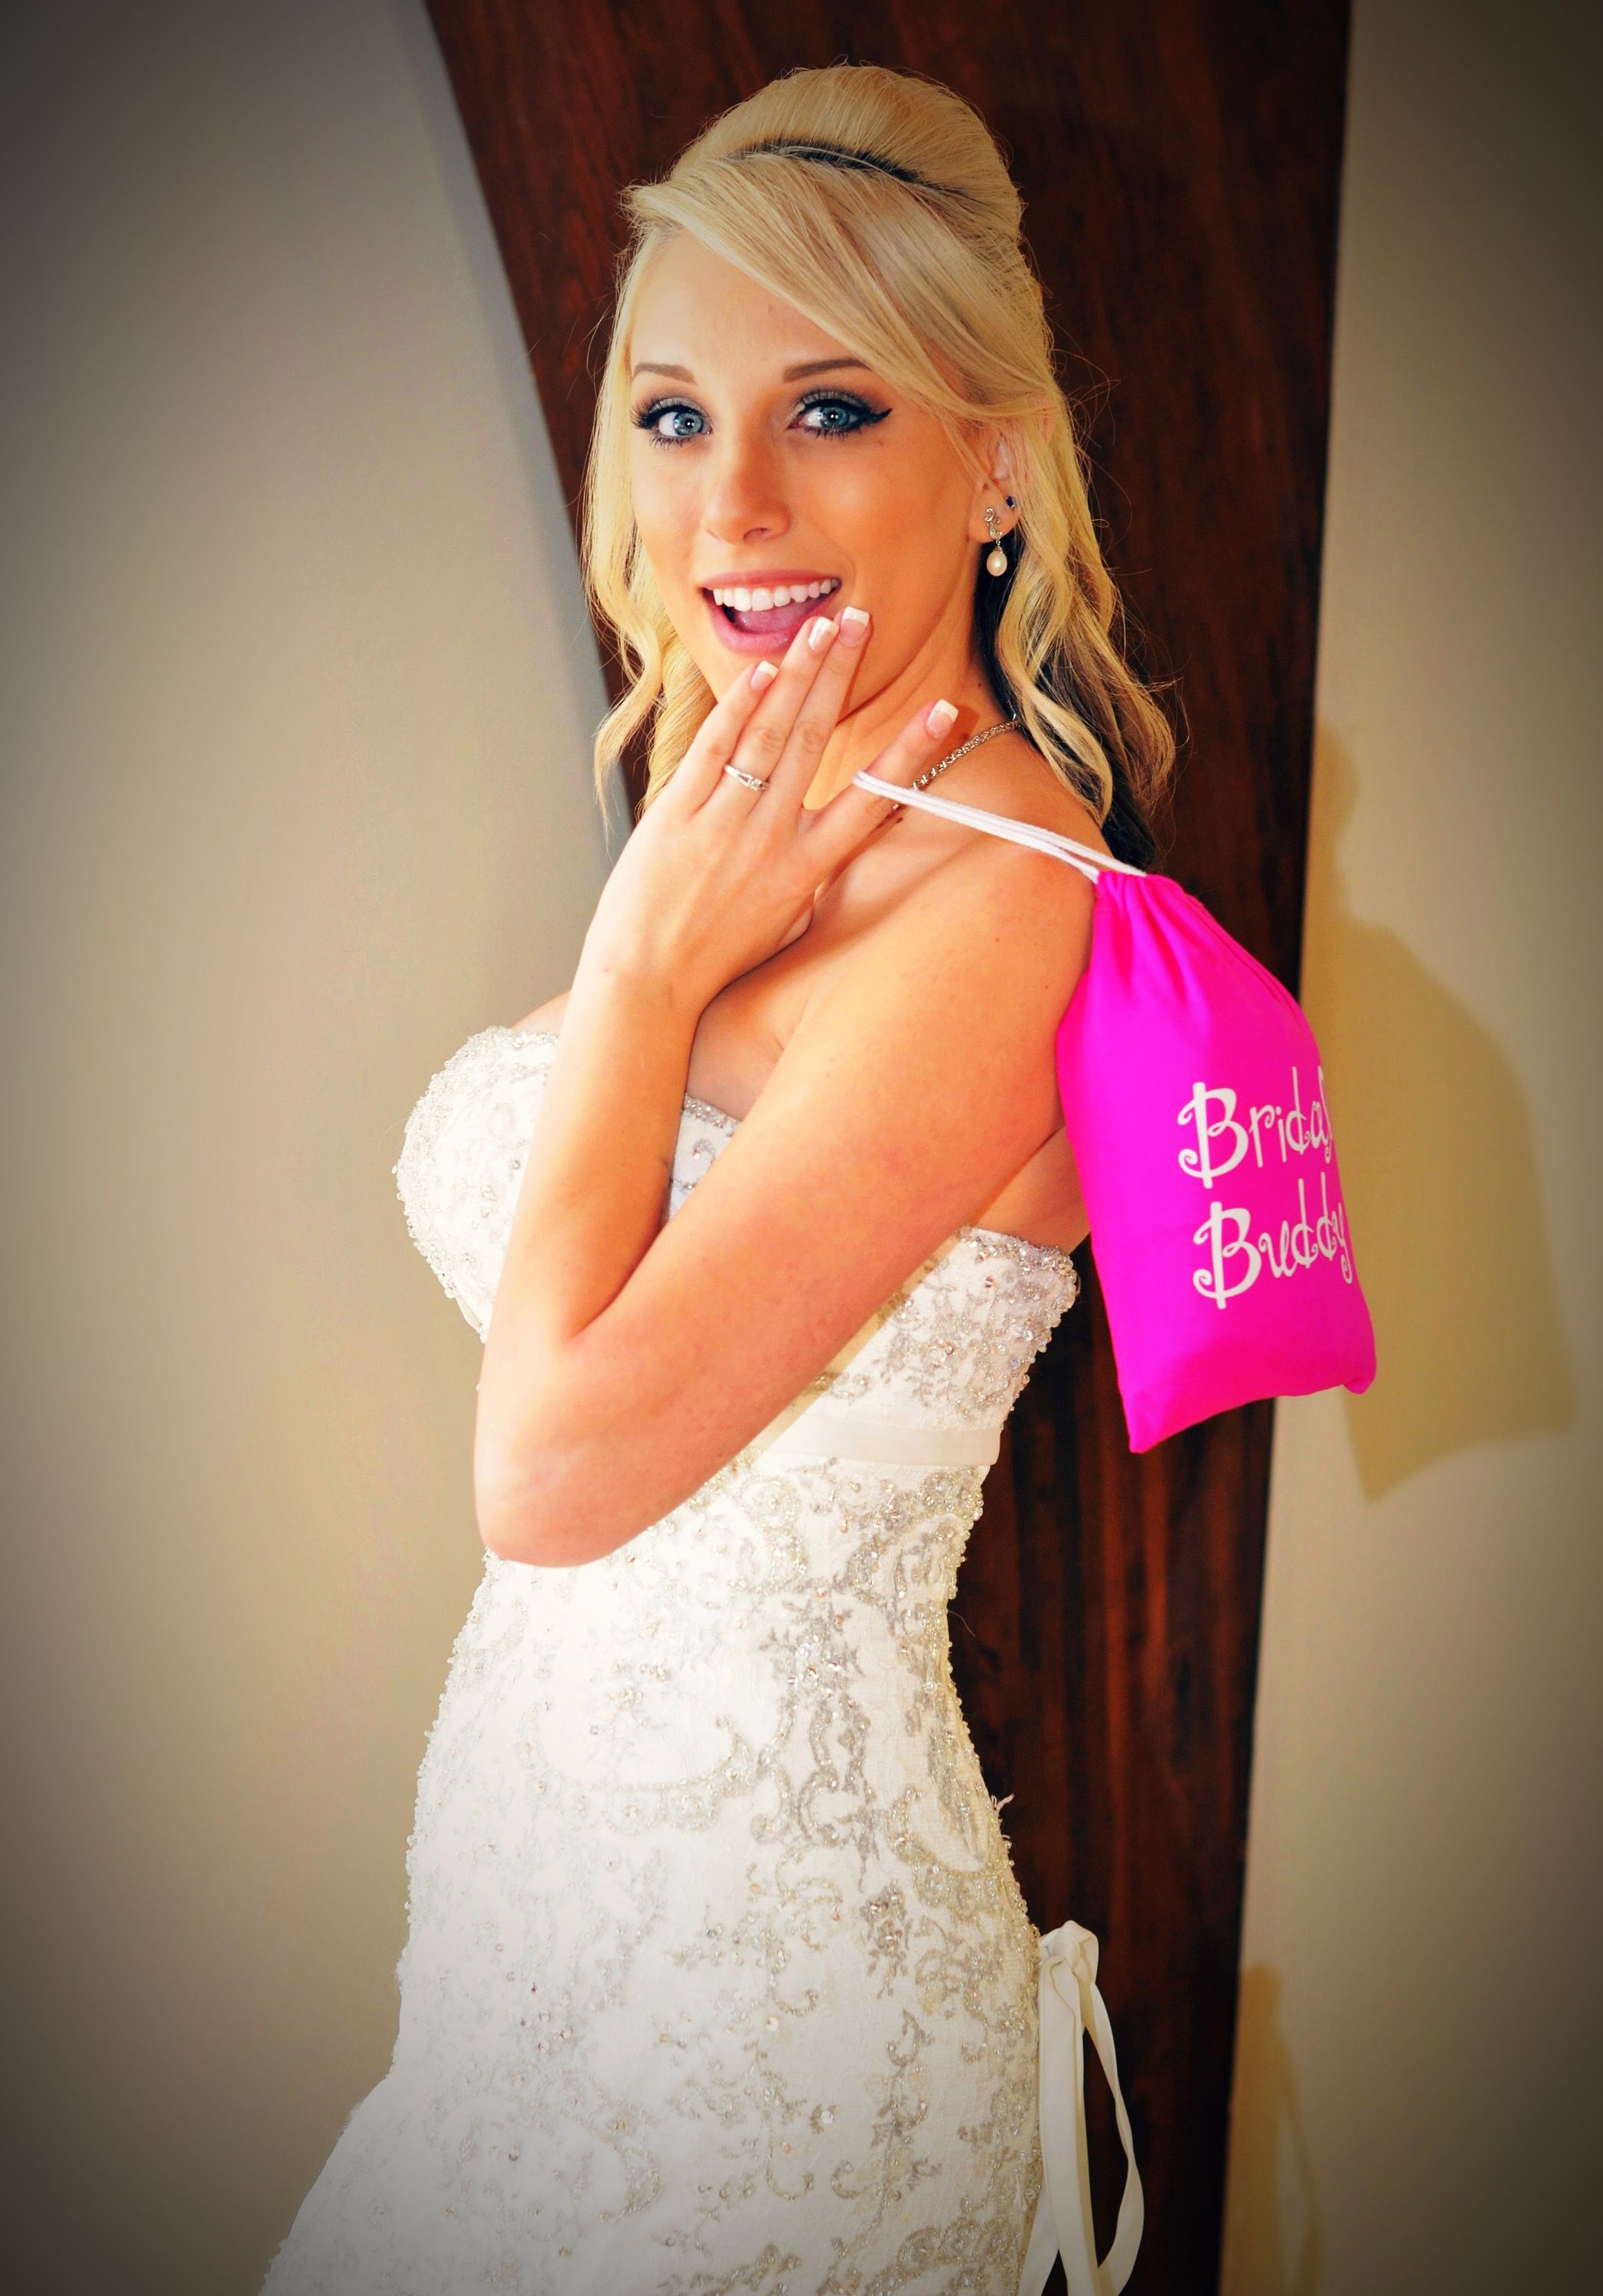 Bridal Buddy can be used with any style gown! bridalbuddy